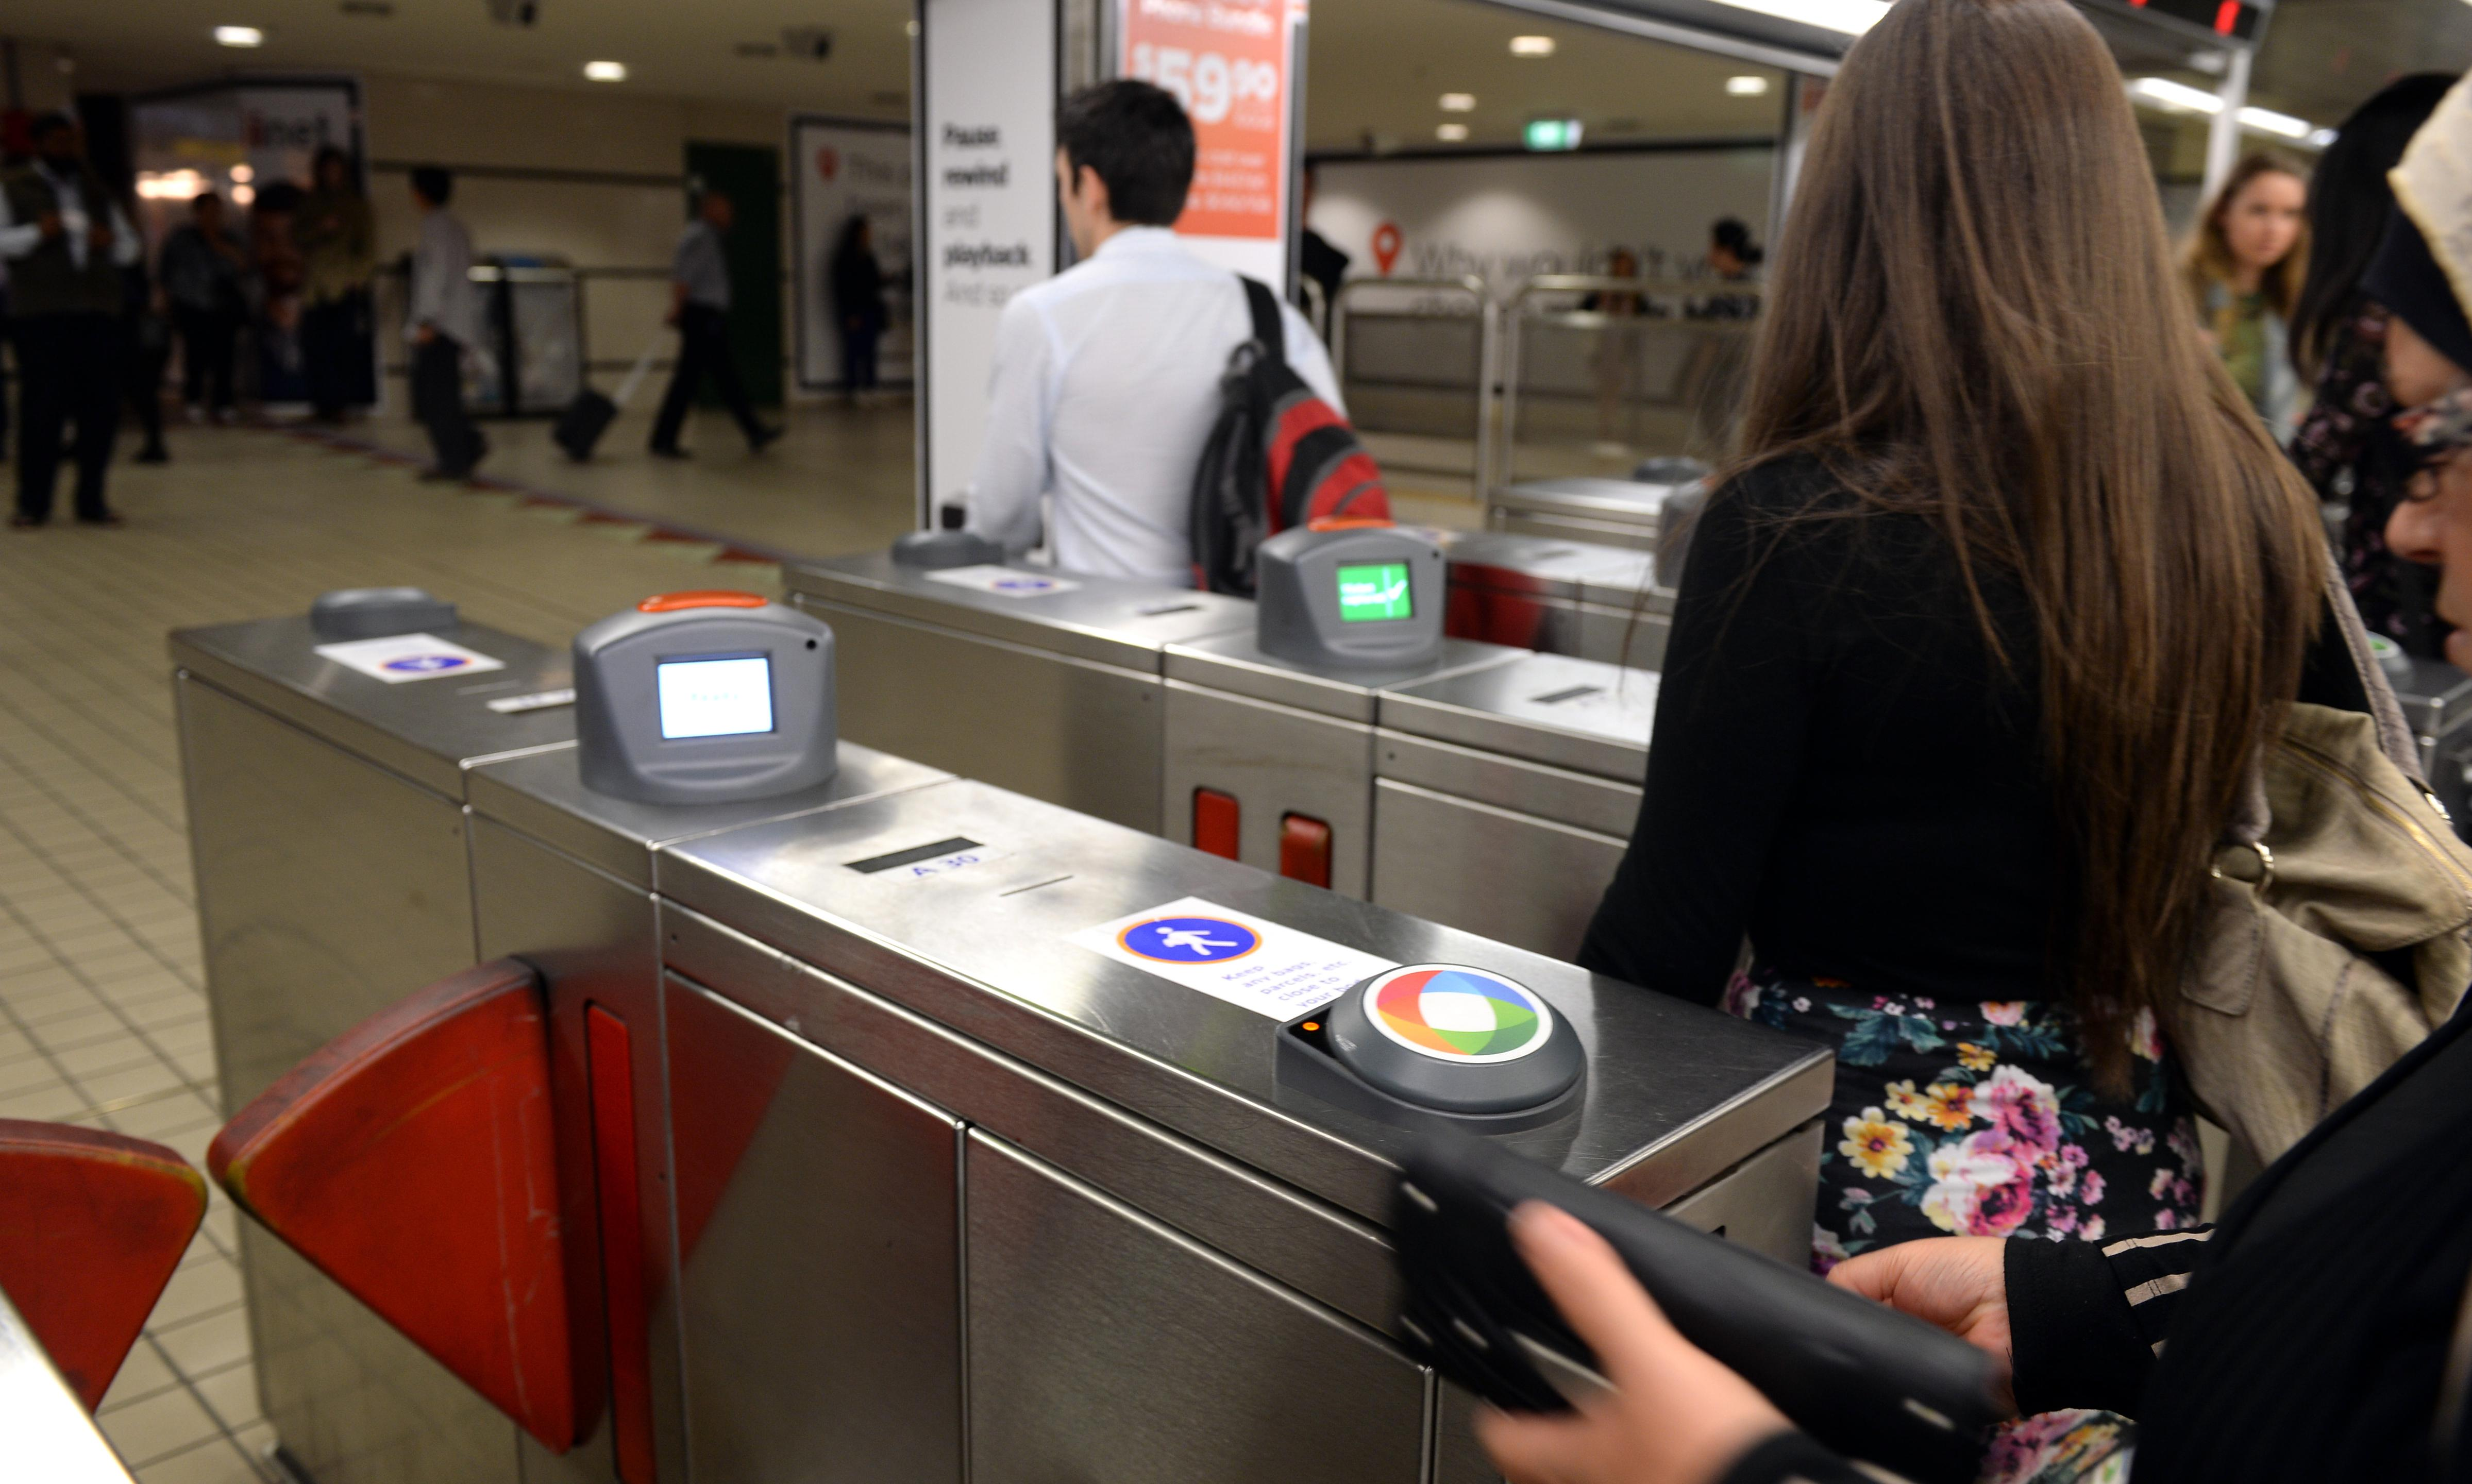 NSW suggests facial recognition could replace Opal cards in 'not too distant future'